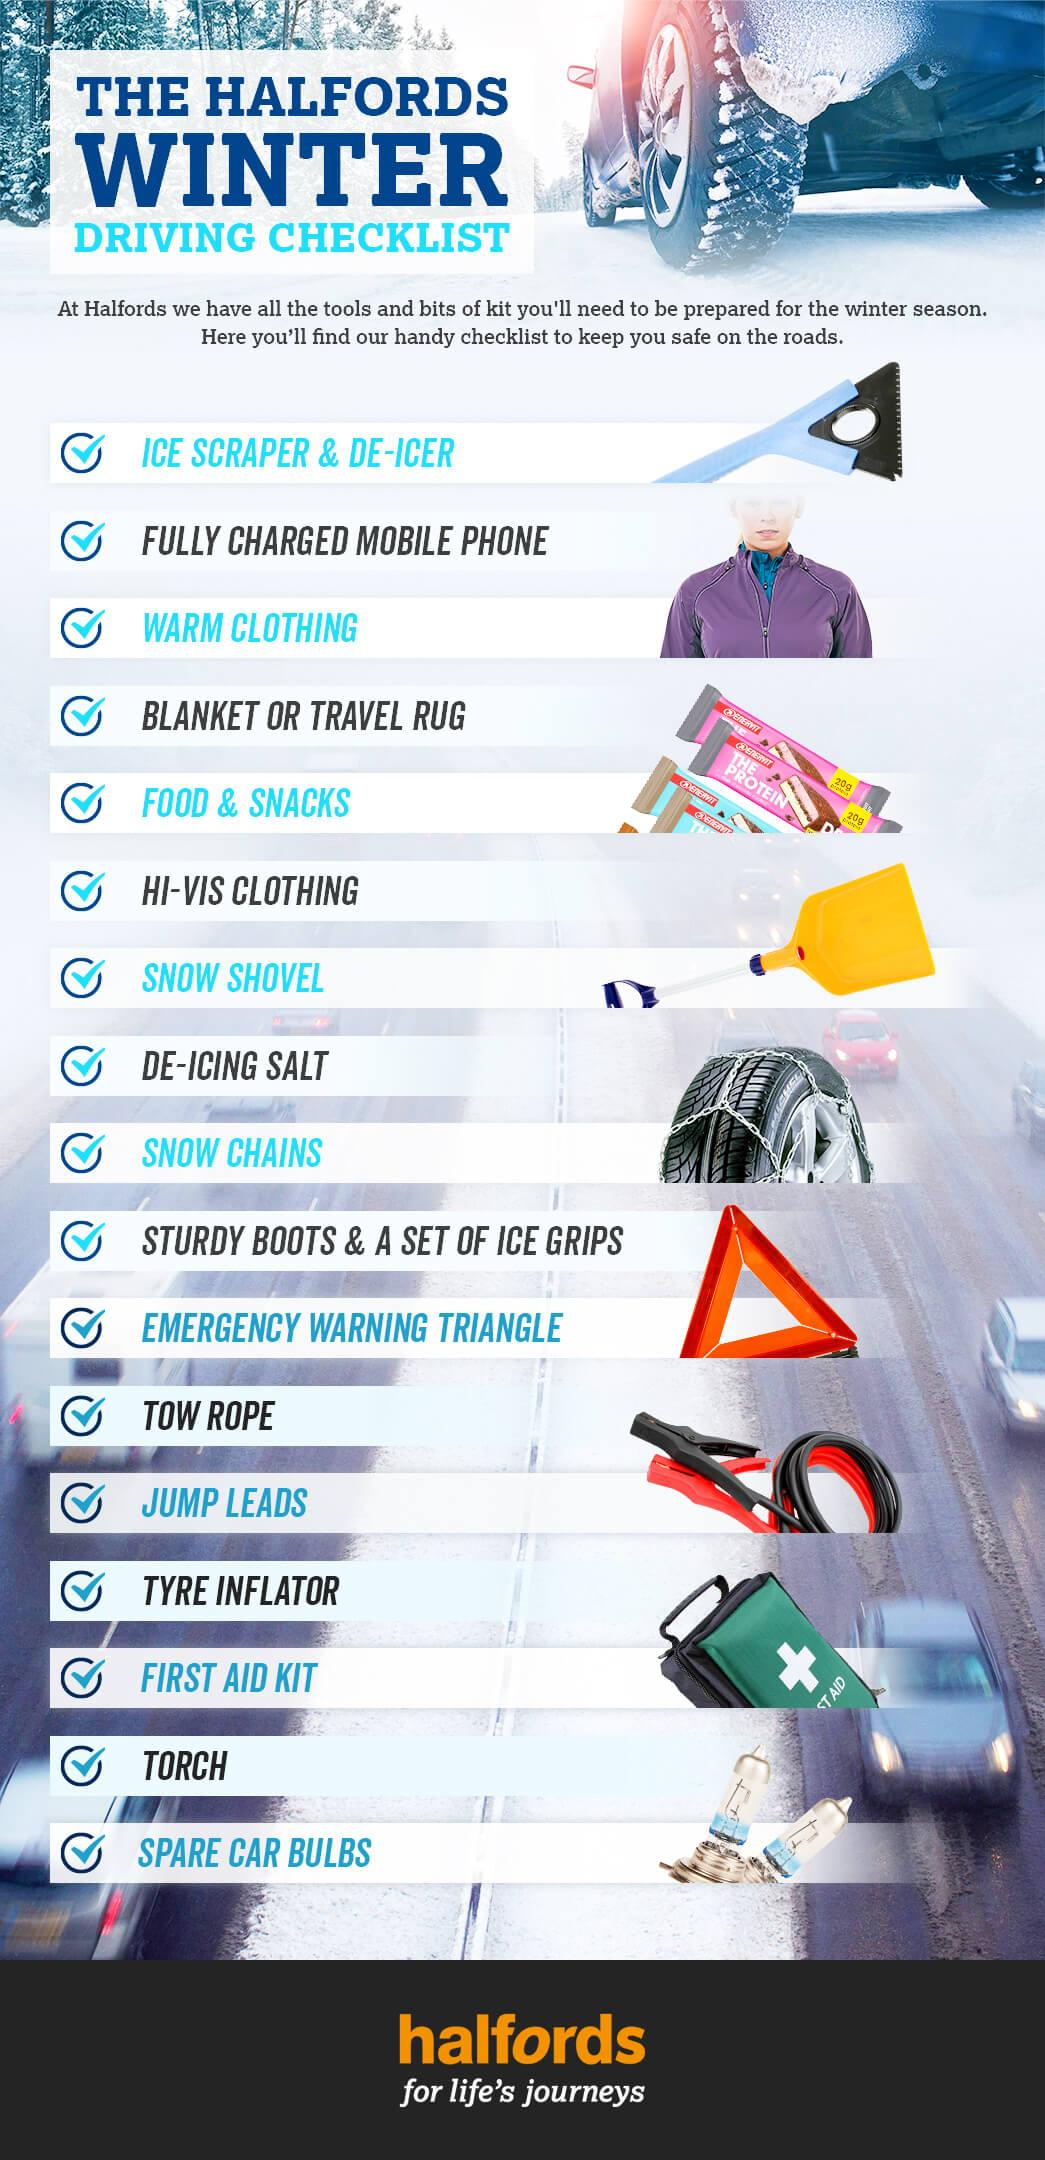 infographic showing items for a car needed during in winter